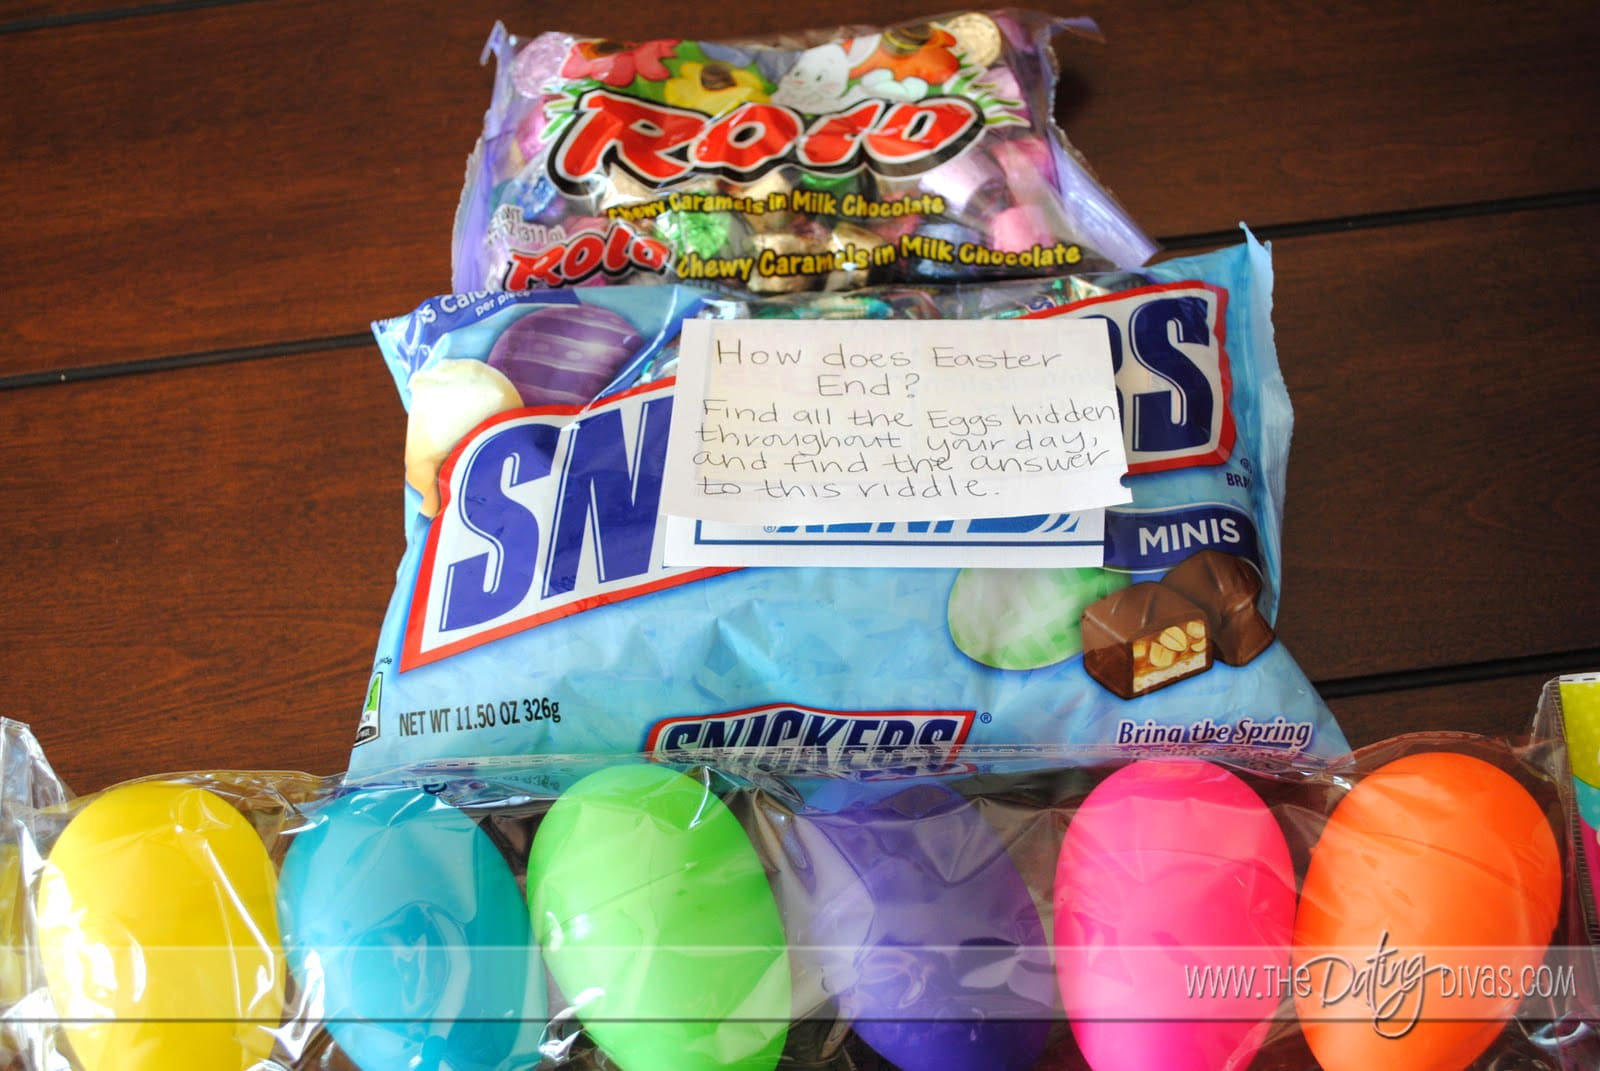 dating divas easter egg hunt When you find all of your colored eggs run to the person in charge who will verify that you have them all they will keep that prize egg for you until the hunt is over 2 you can only pick up your color of eggs, but you can grab any confetti eggs or large prize eggs 3 any eggs picked up have to go in your easter basket or bucket.